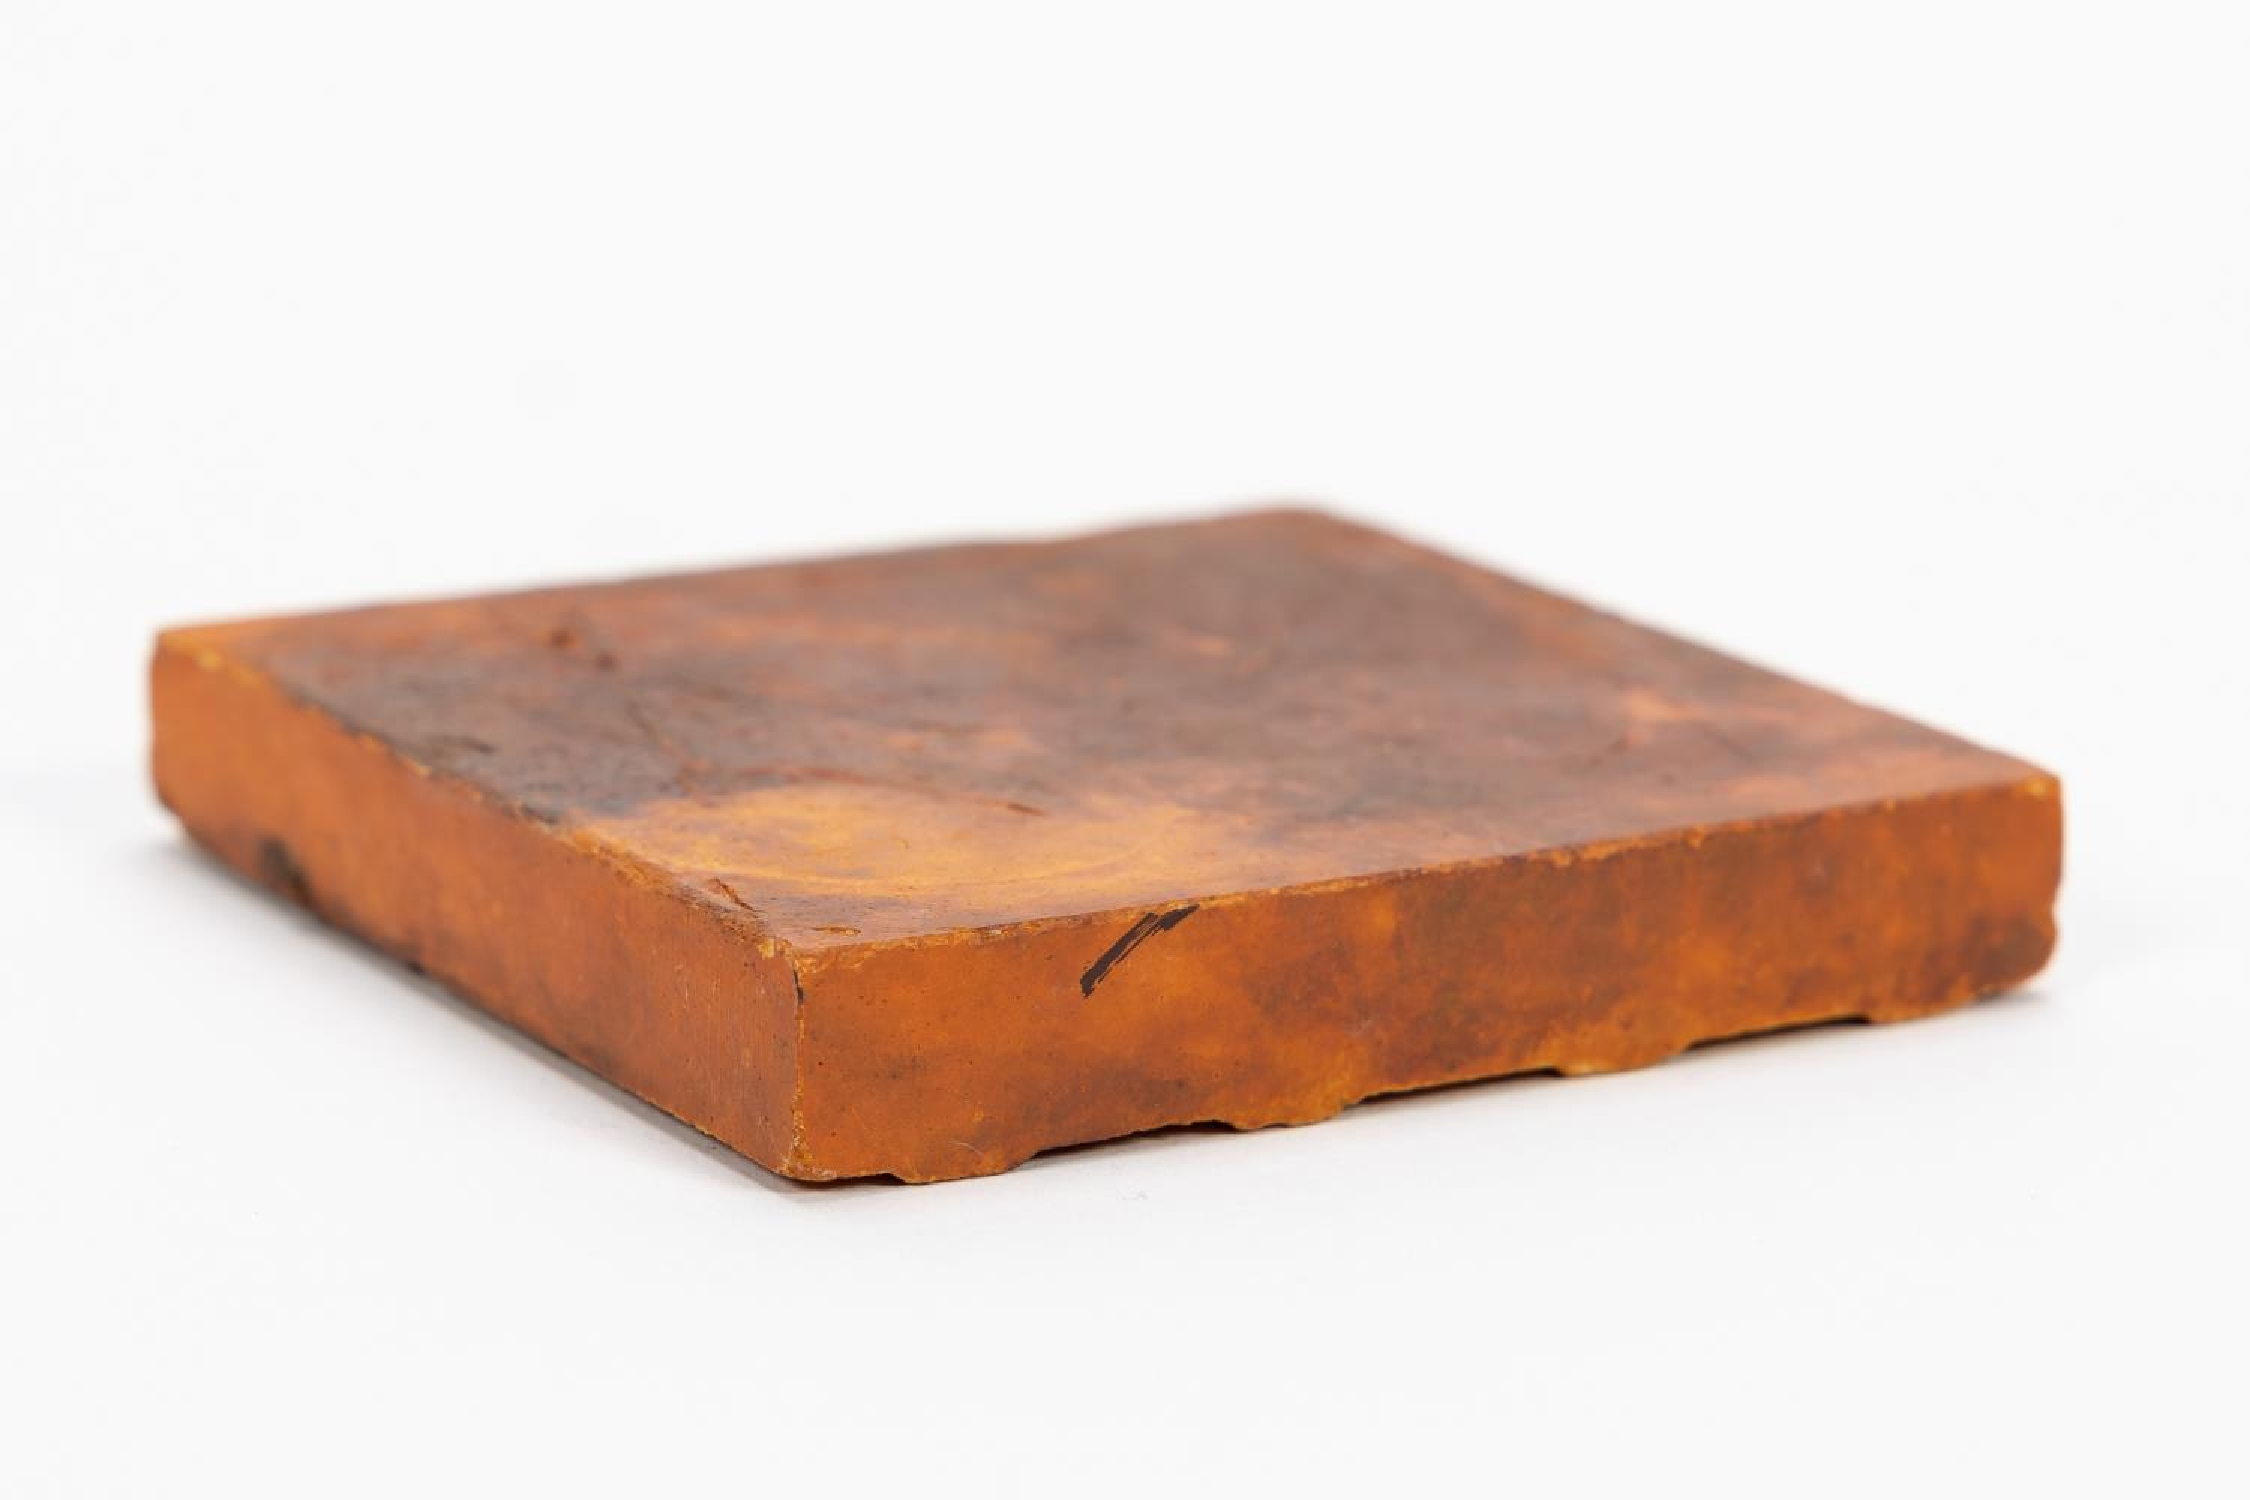 RMS CARPATHIA, SALVAGED SMALL RED FLOOR TILE - Image 3 of 6